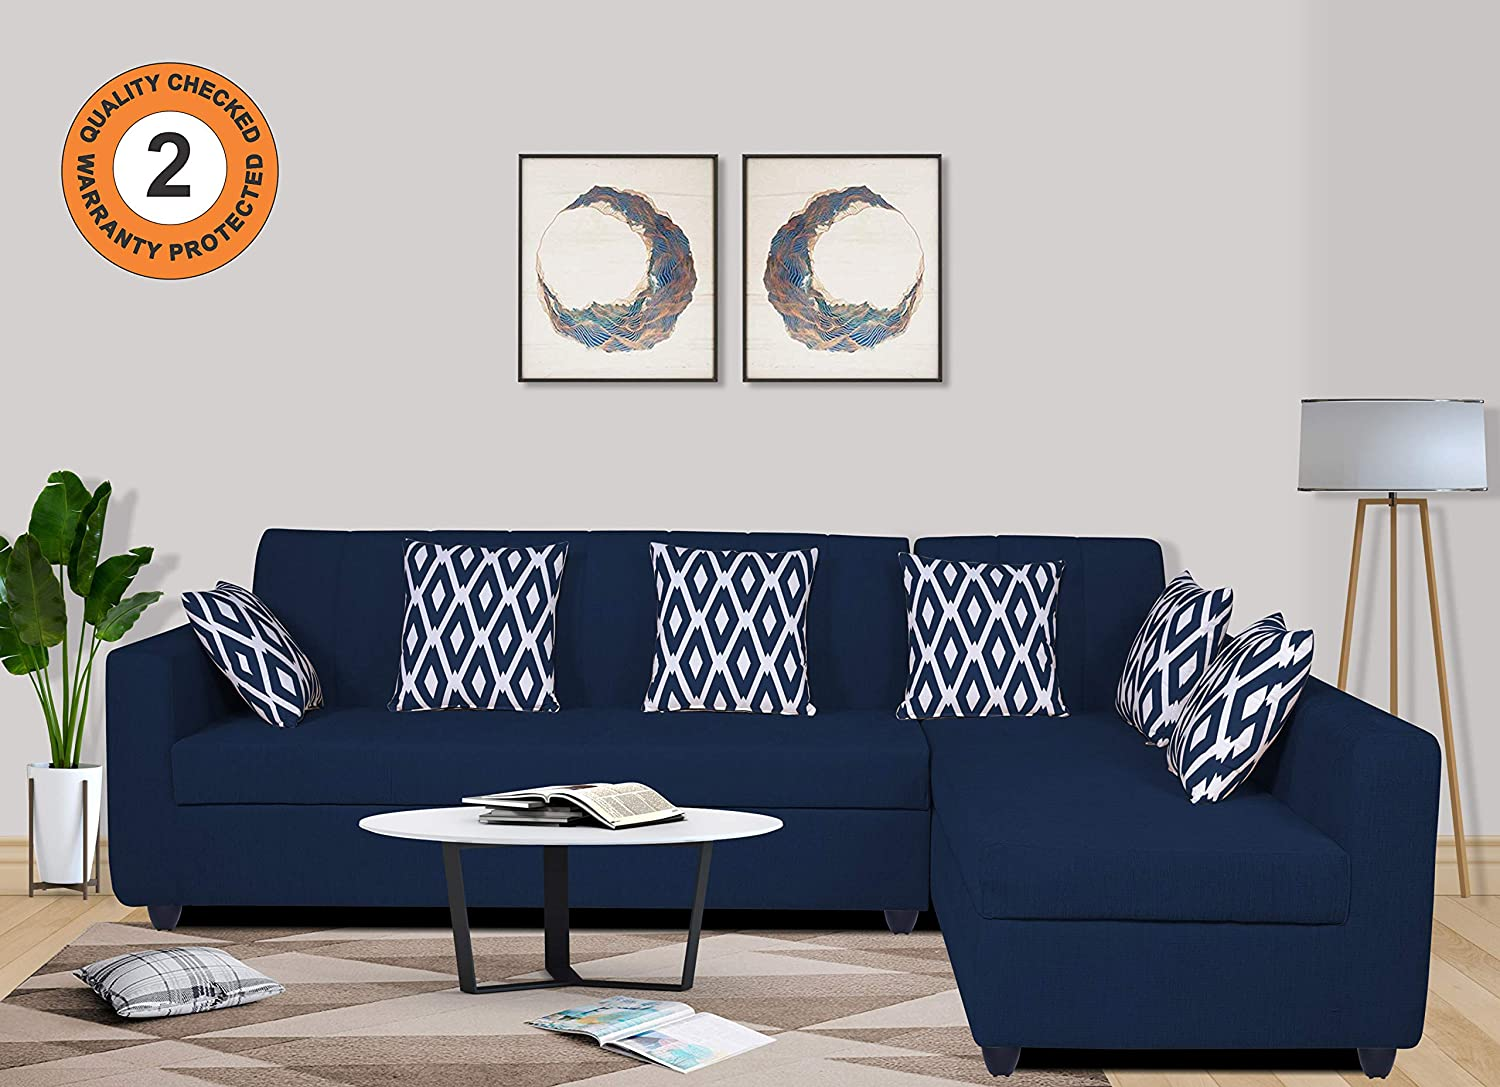 Toxill l shape sofa for drawing room 5 Seater coner Sofa Set